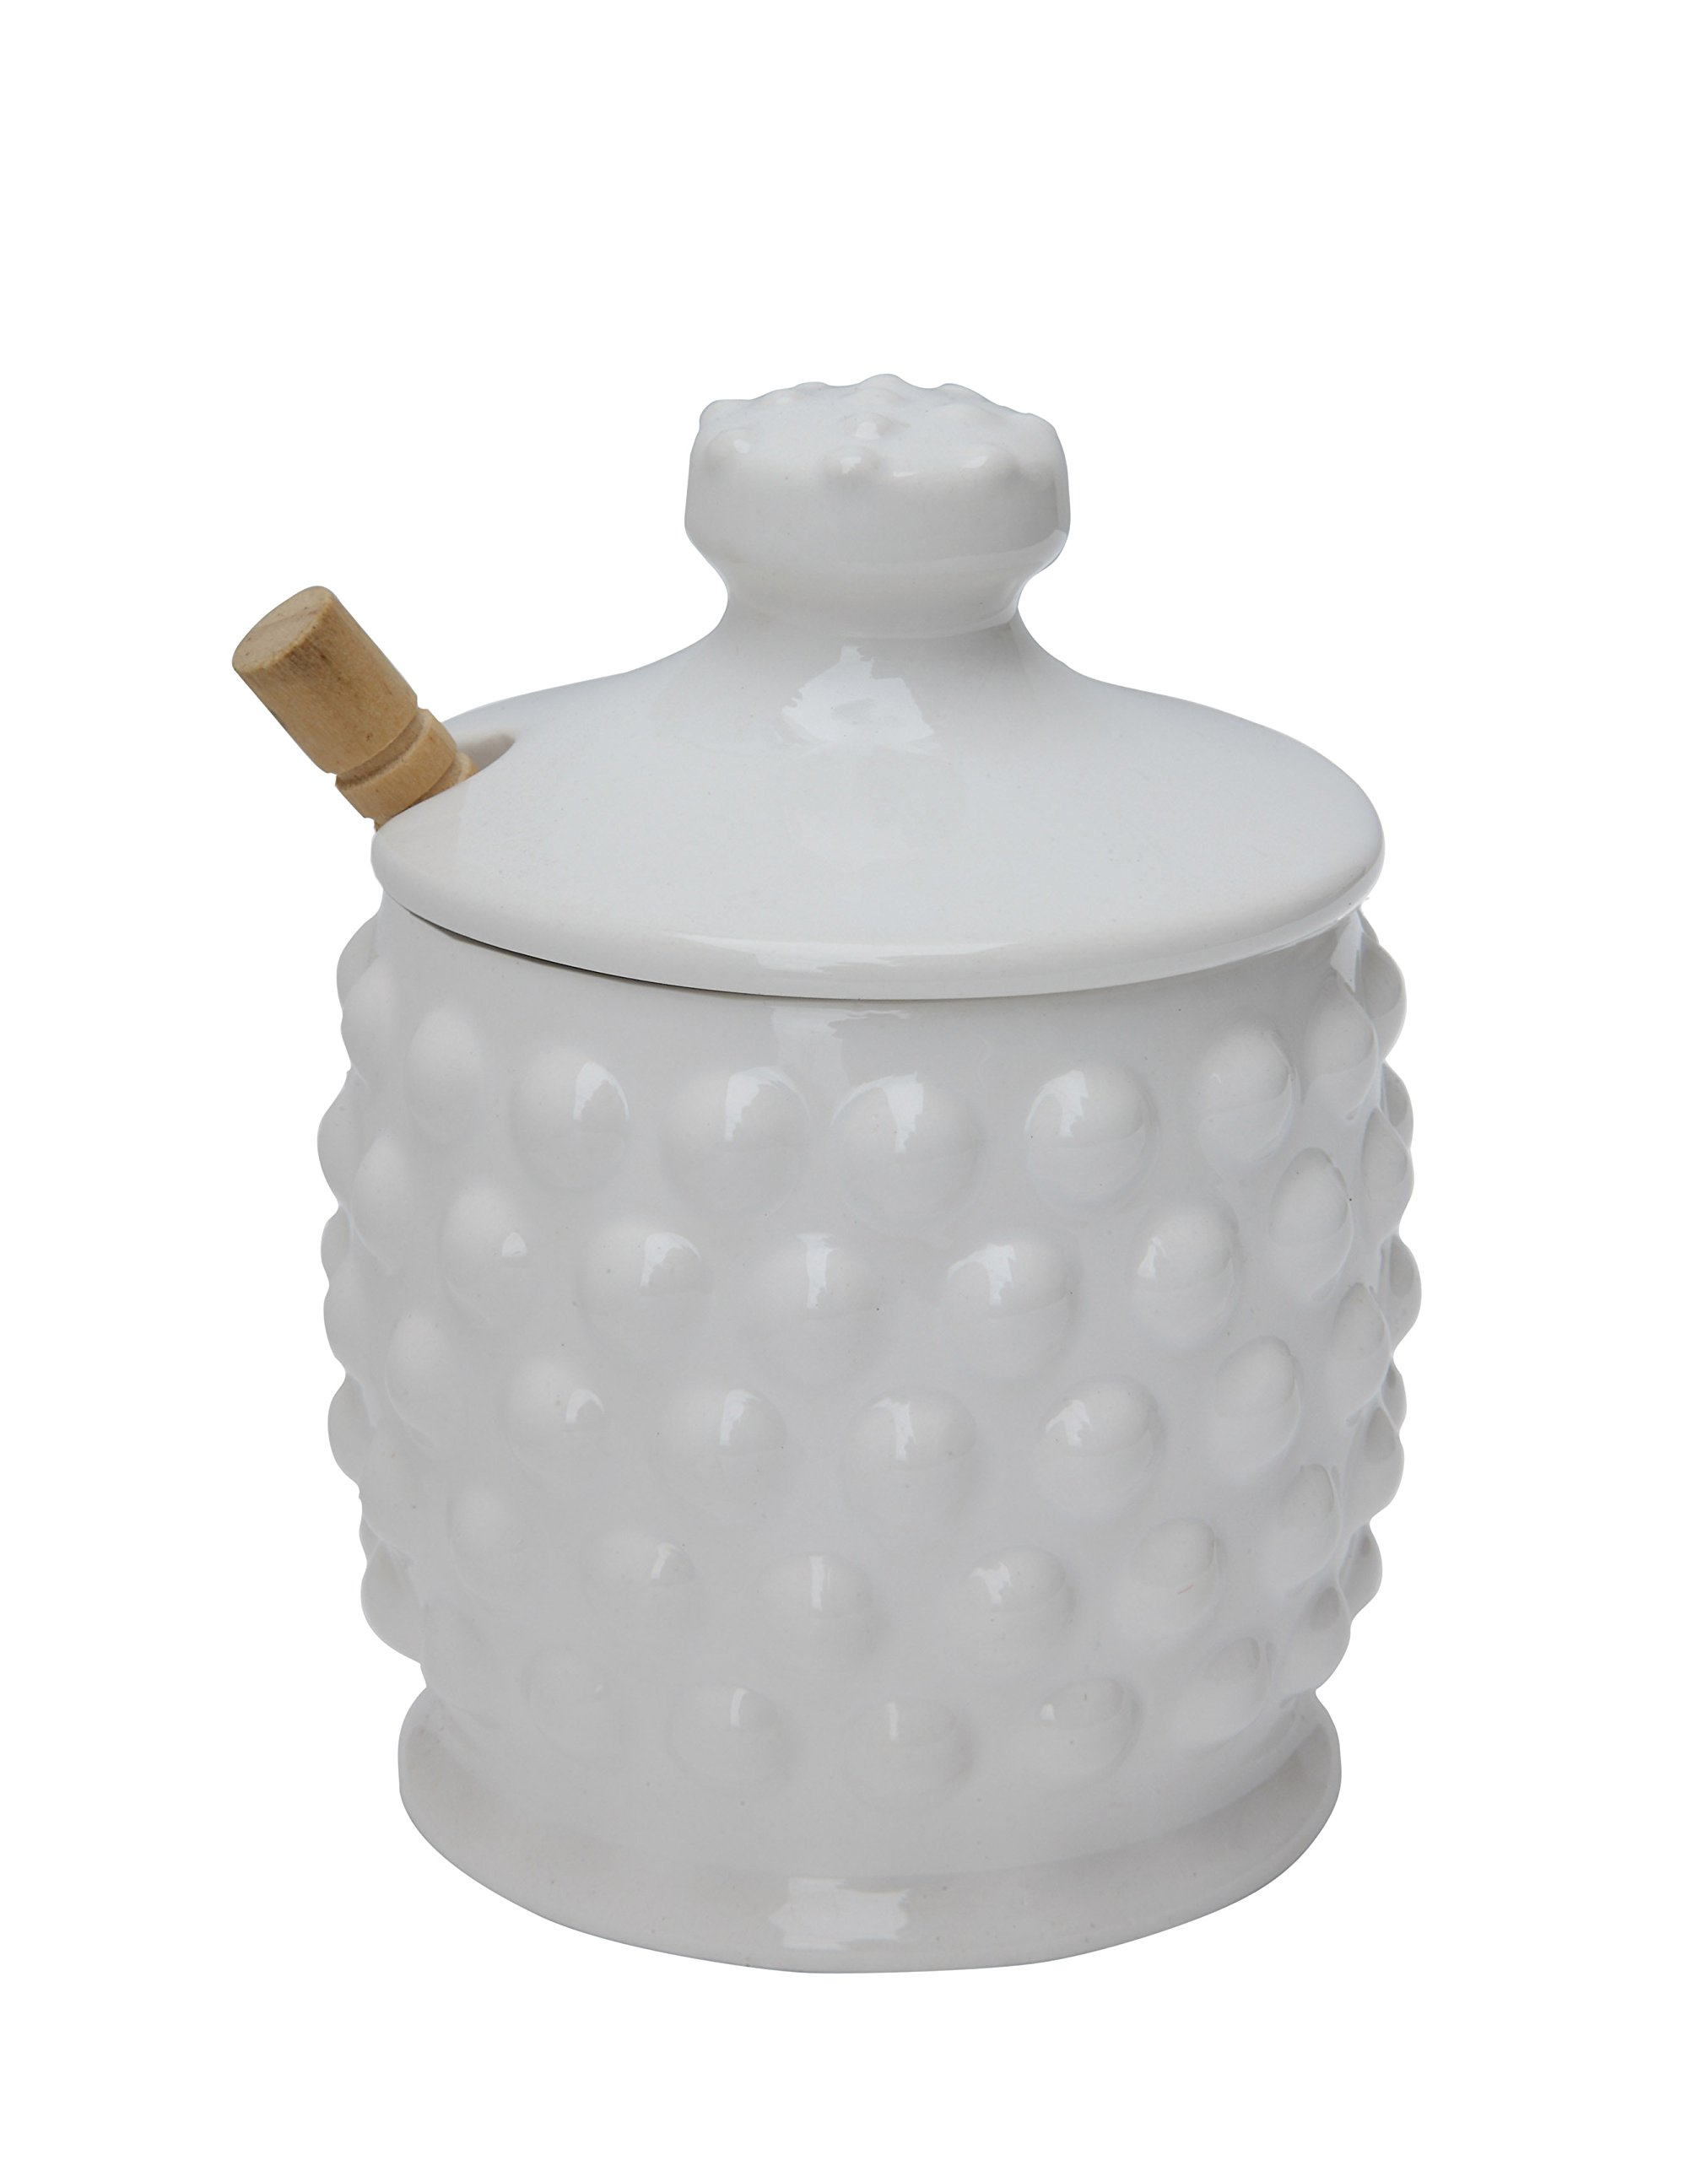 Creative Co-Op DA4847 White Ceramic Hobnail Style Honey Jar with Lid & Wood Dipper by Creative Co-op (Image #1)